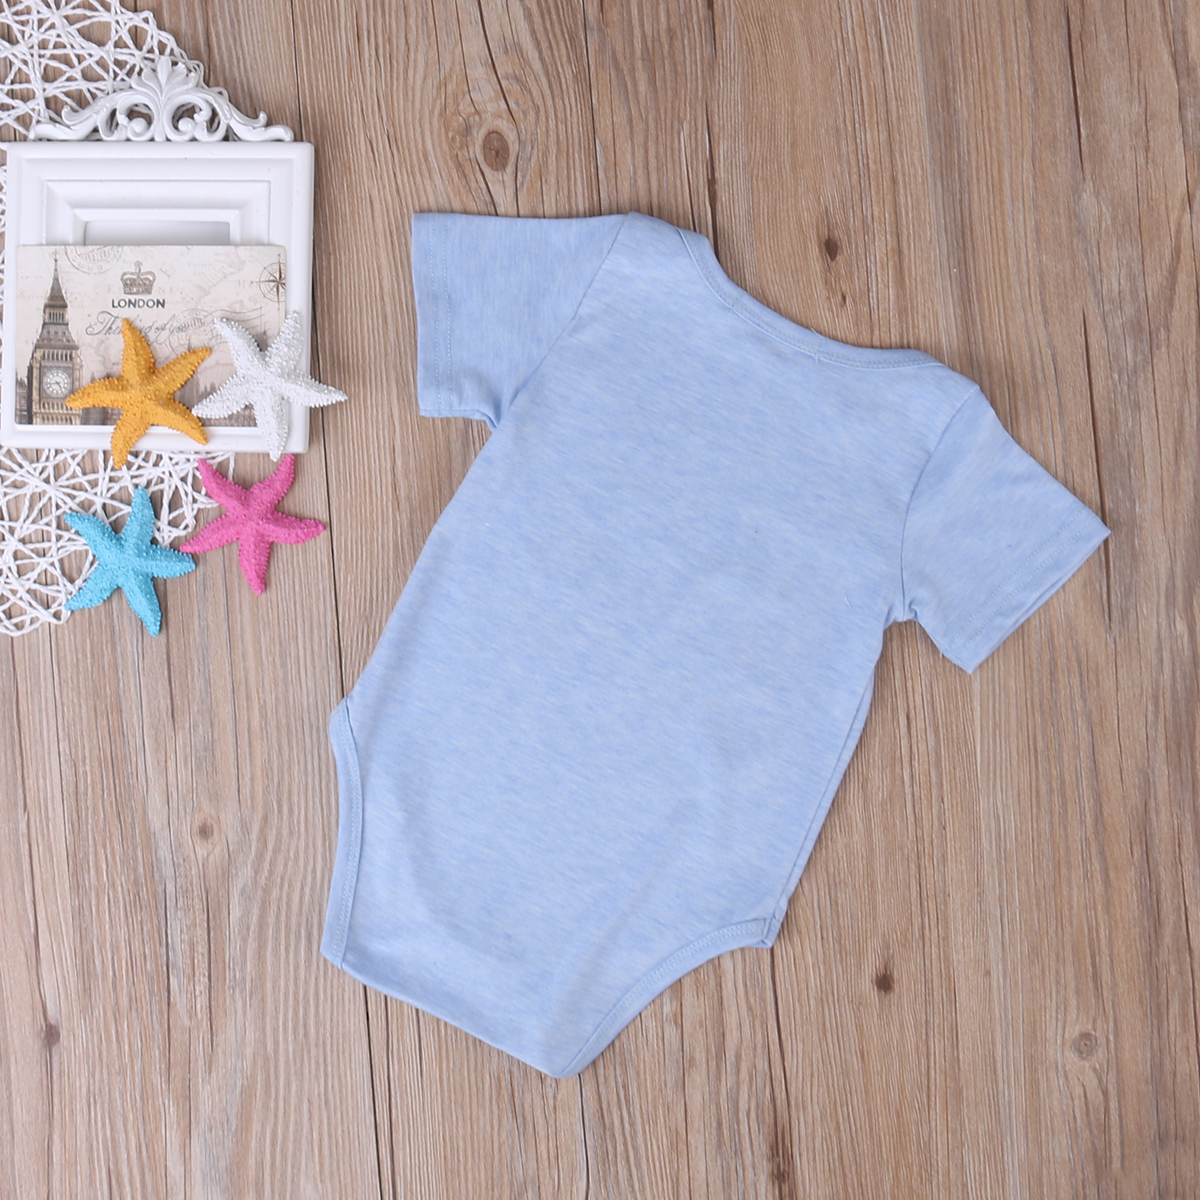 Newborn Baby boys girls letter Bodysuits onesie Infant Babies Boy Girl Cute Cotton Bodysuit one-pieces Outfits Kids Clothing